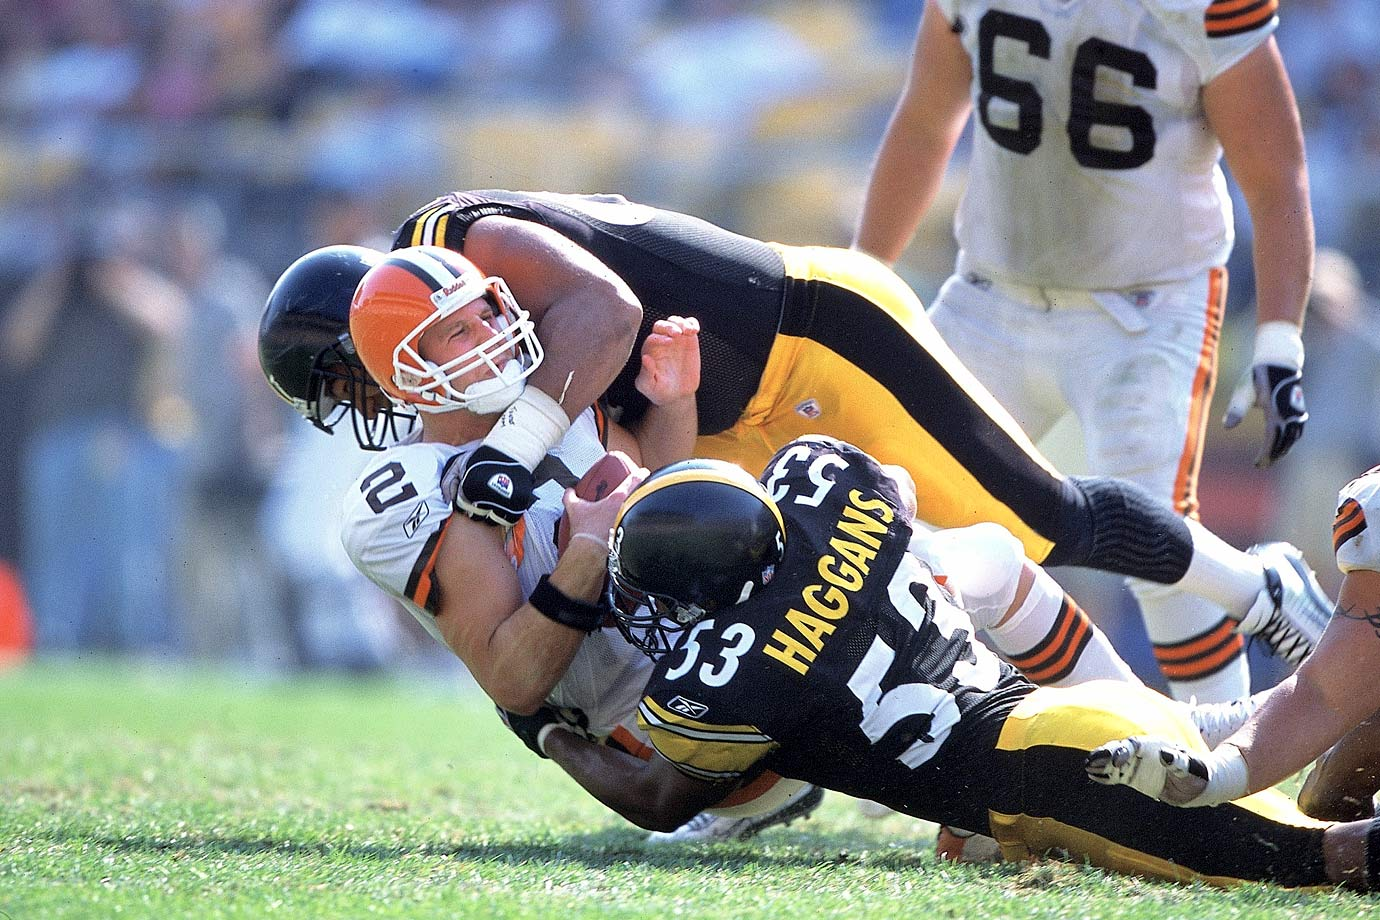 With the number one pick, the Browns had their choice of two of what would become the biggest quarterback busts of all time, Tim Couch and Akili Smith, and eventually took the Heisman trophy finalist Couch. While Couch made 62 starts with the Browns in comparison to Smith's 17 with the Bengals, his numbers were entirely mediocre. Couch threw for a miserable 11,571 yards, 64 touchdowns, and 67 interceptions in five injury-plagued seasons. After being released at the end of the 2003 season, he attempted several comebacks but failed in each of them. His decline culminated when he tested positive for steroids and HGH in August 2007.